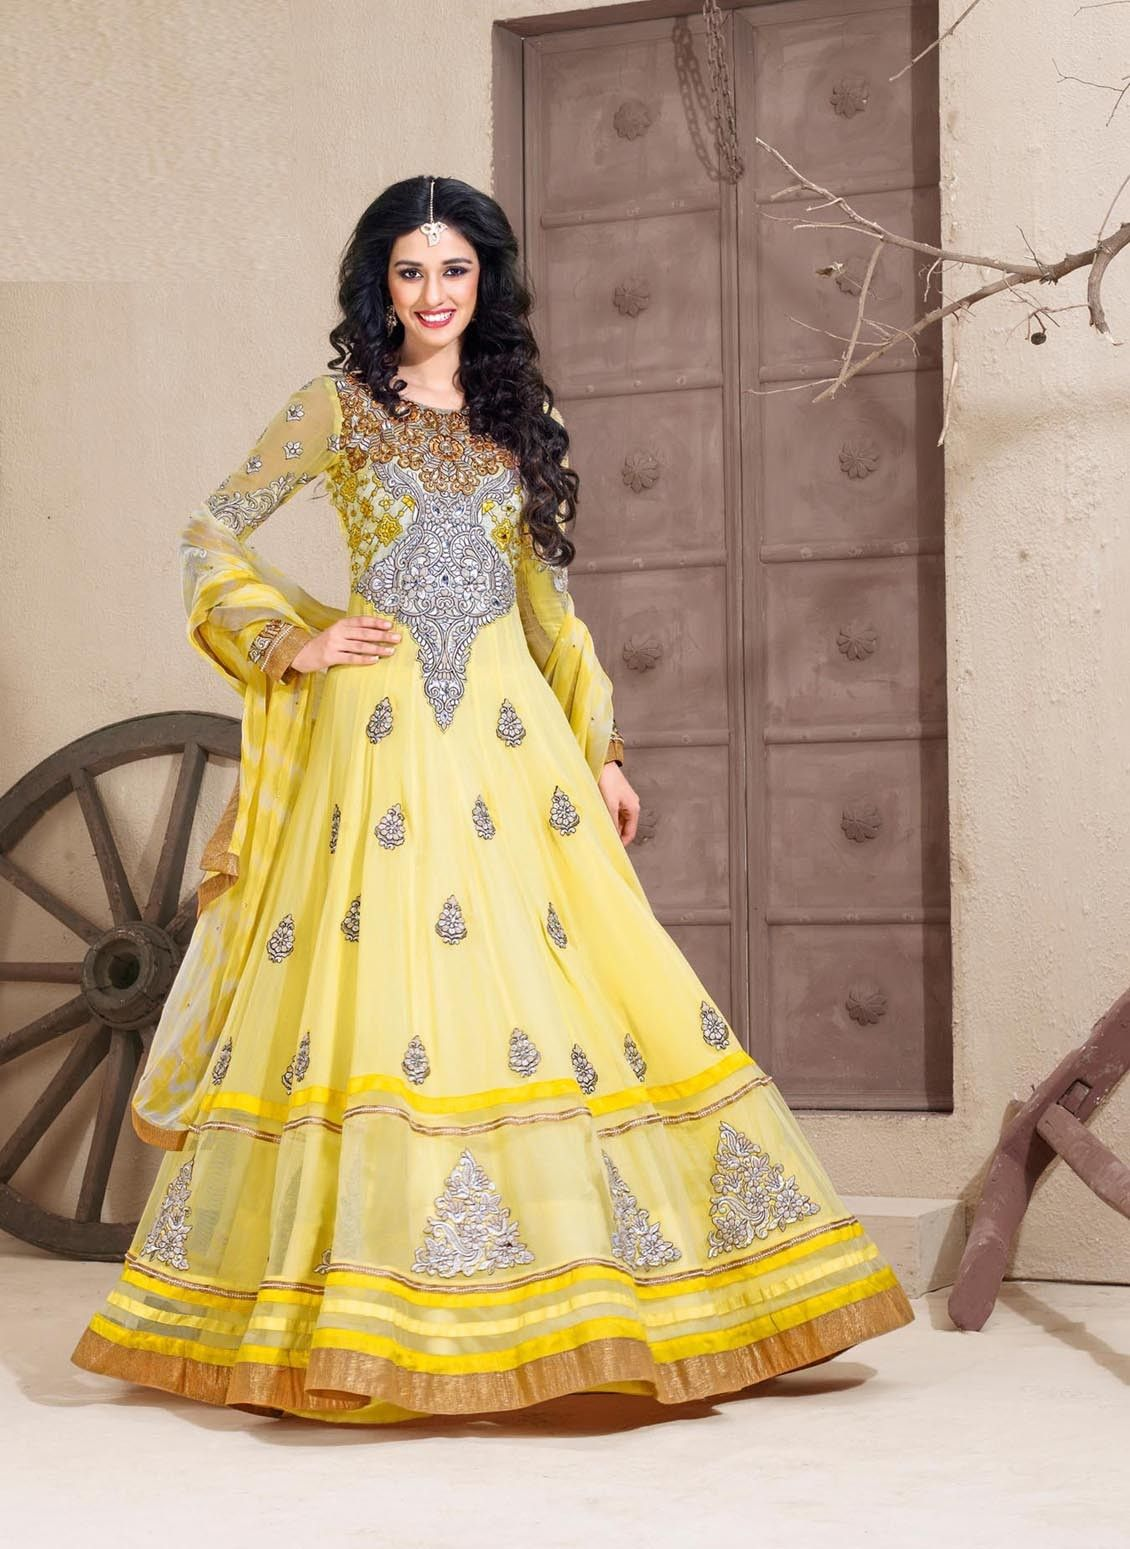 Marvelous Yellow Applique Work Faux Georgette Anarkali Suit. Product Code : LBZ001201 Price : ₹5,090.00 Buy Now :- http://goo.gl/jTy5Zf